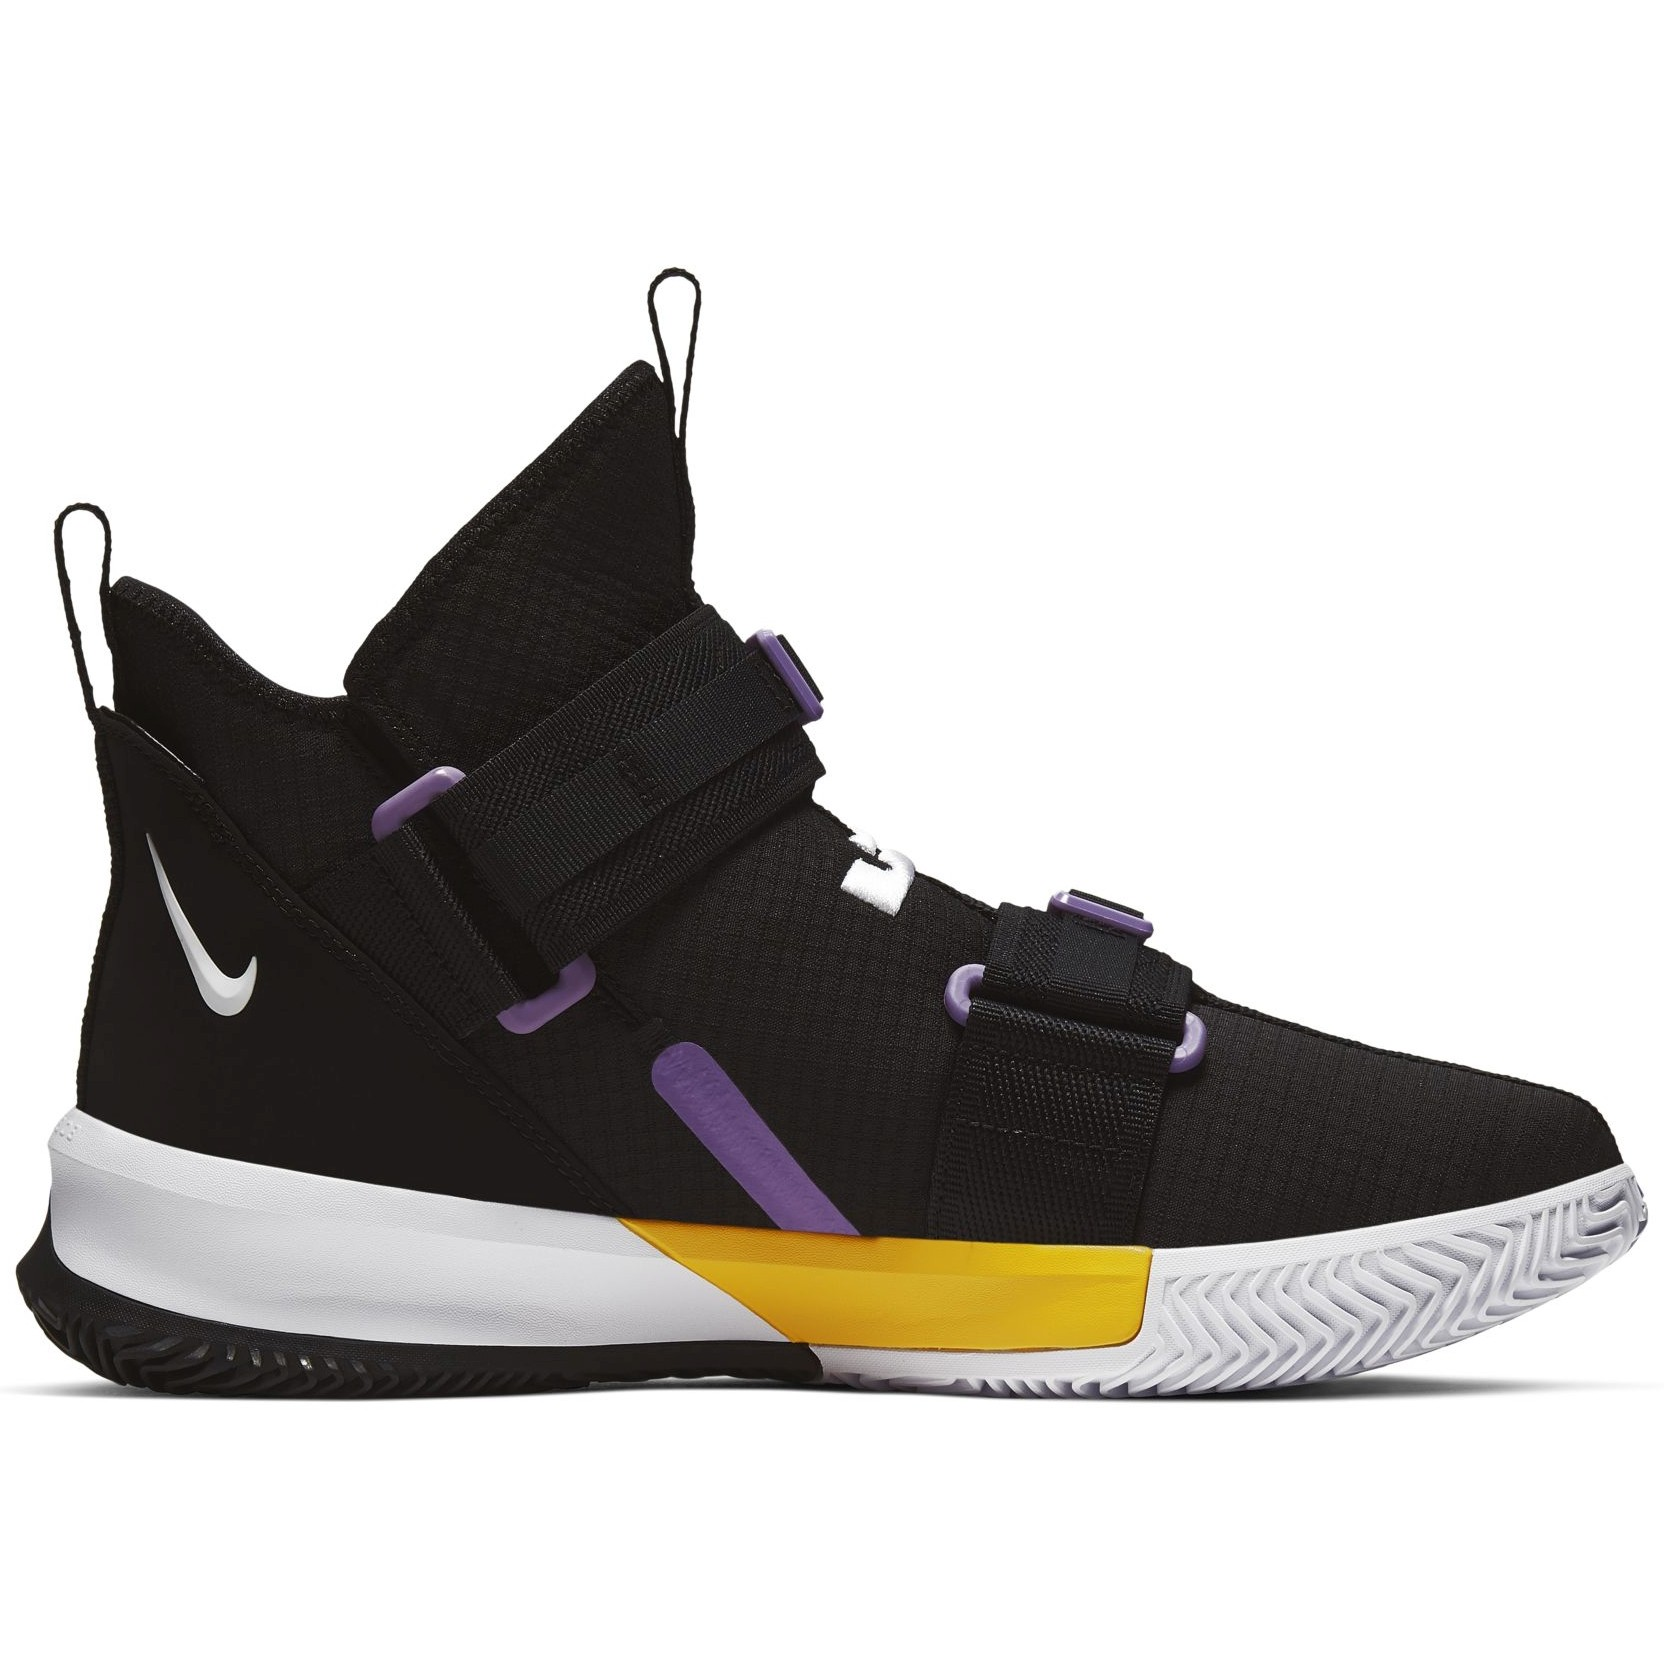 Nike LeBron Soldier XIII SFG Lakers - Basketball shoes